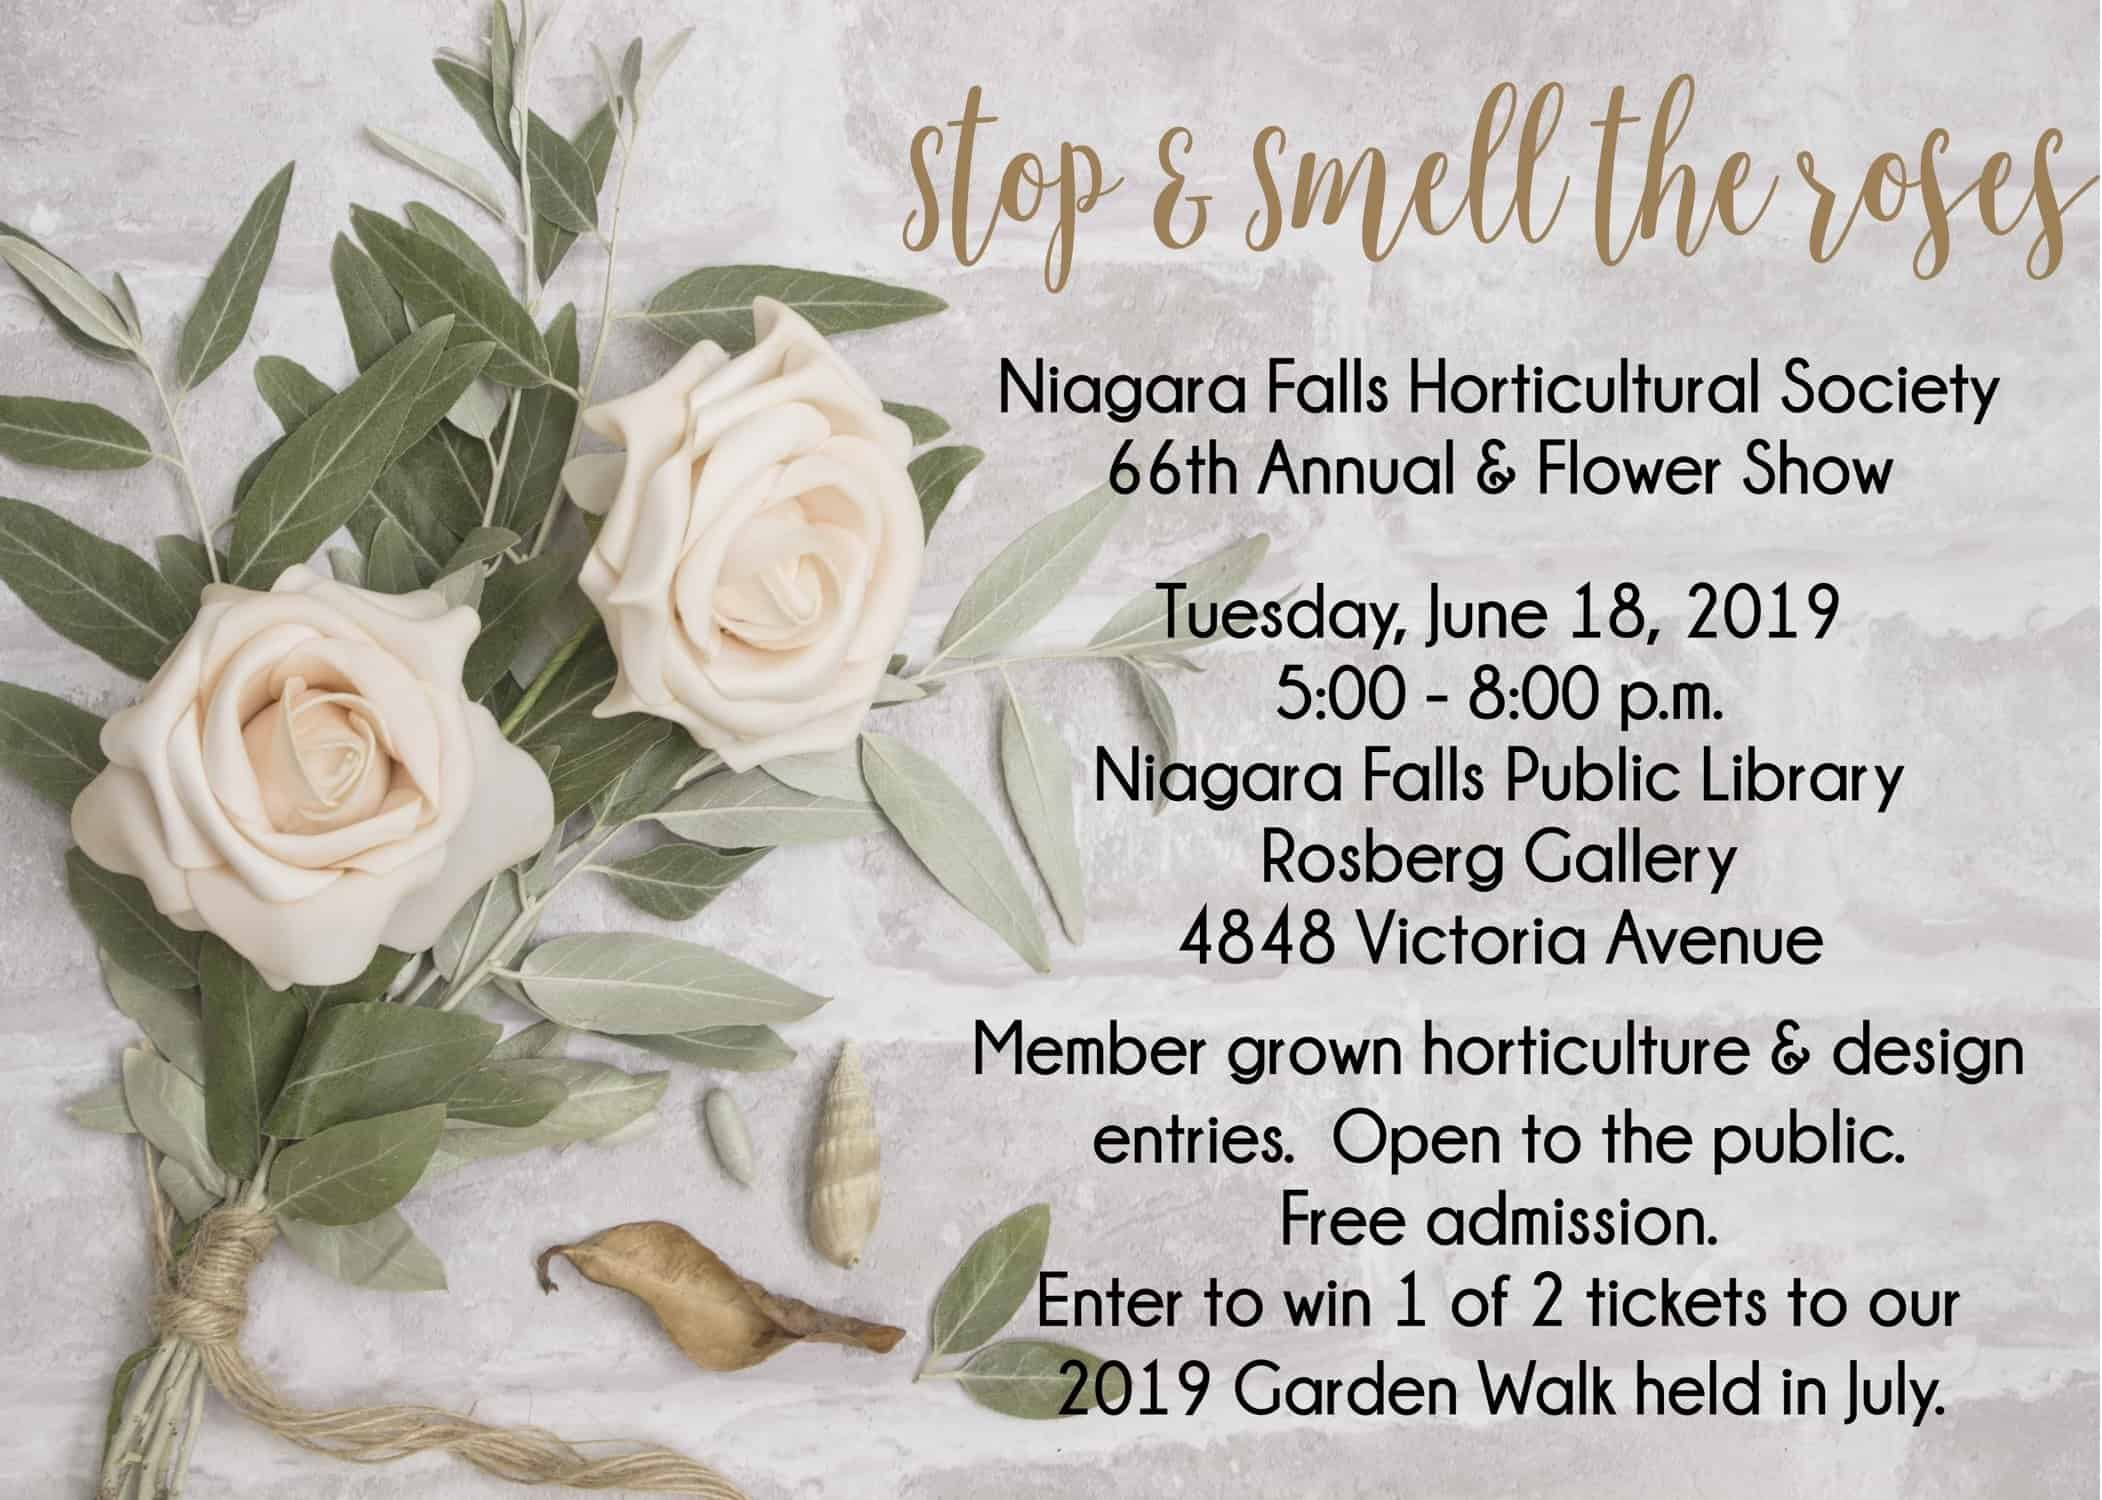 66th Annual Rose & Flower Show